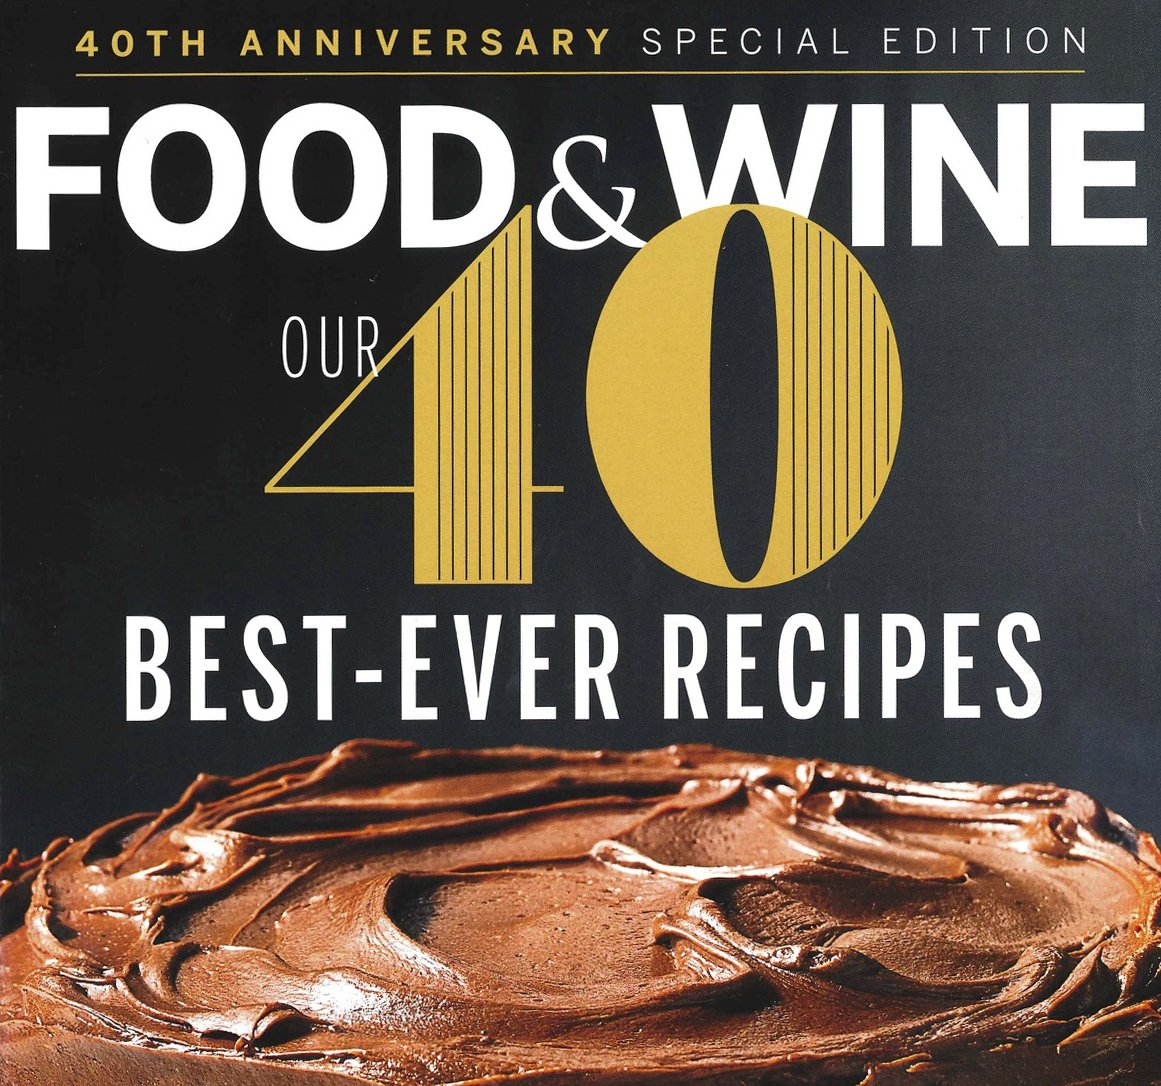 It's our birthday—we're turning 40! 🍾  To celebrate, we've picked our 40 favorite recipes—the very best of the 24,000+ that we've published since 1978.   So pop the bubbly, fire up the oven, and help us celebrate in true F&W style—let's cook! https://t.co/OXXq652iBi